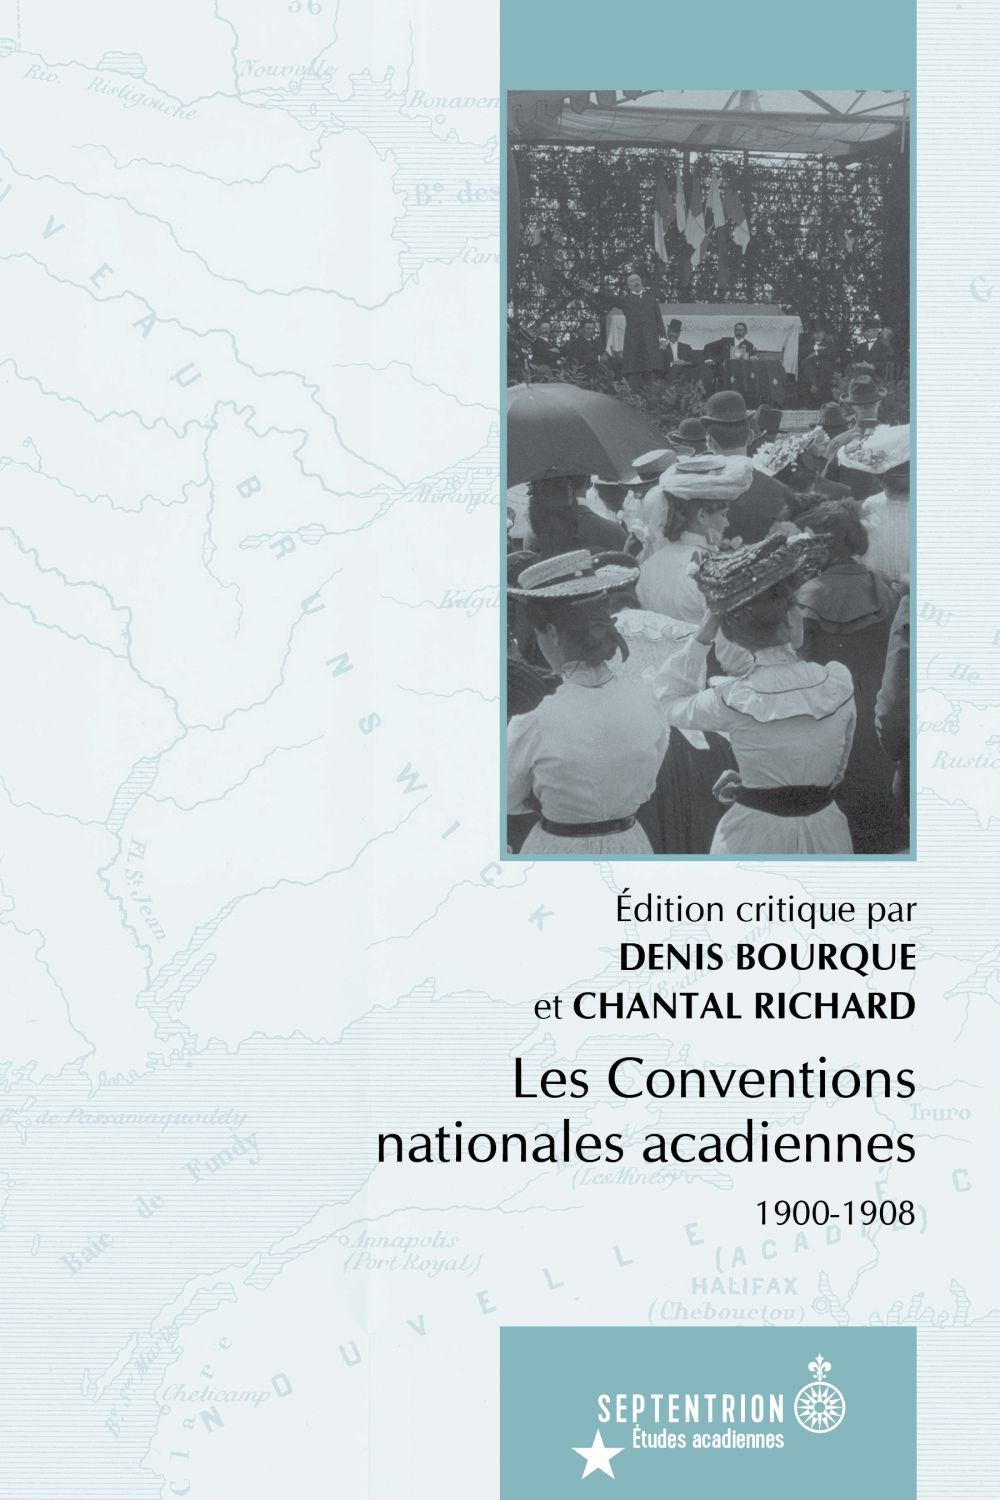 Les Conventions nationales acadiennes